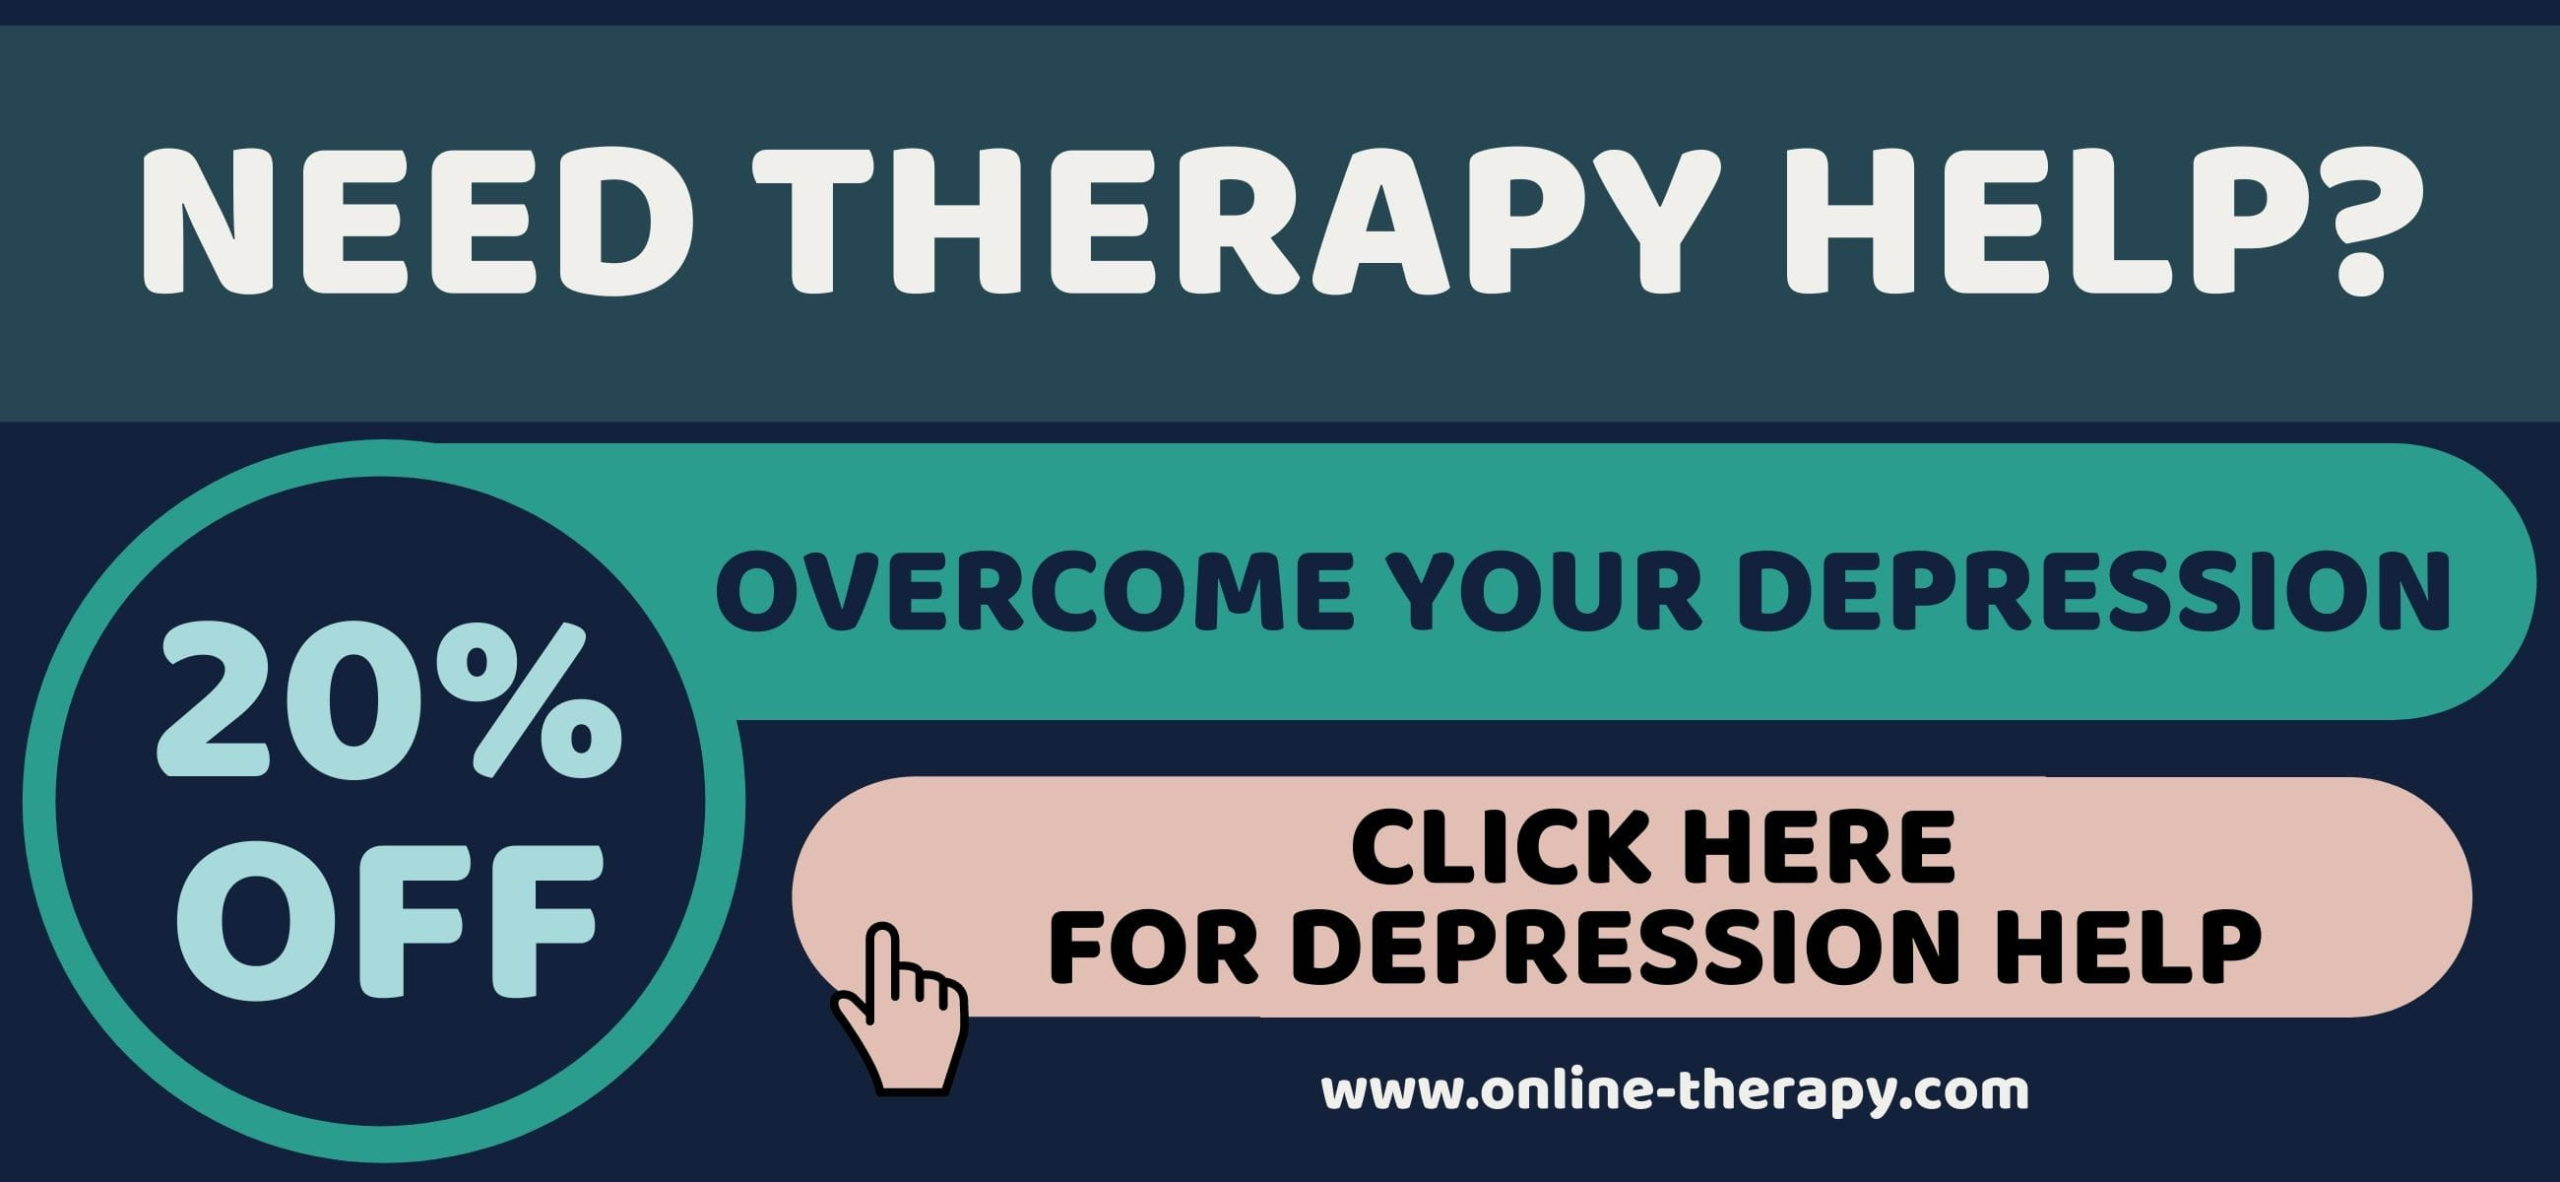 NEED THERAPY HELP_ Whattogetmy-min